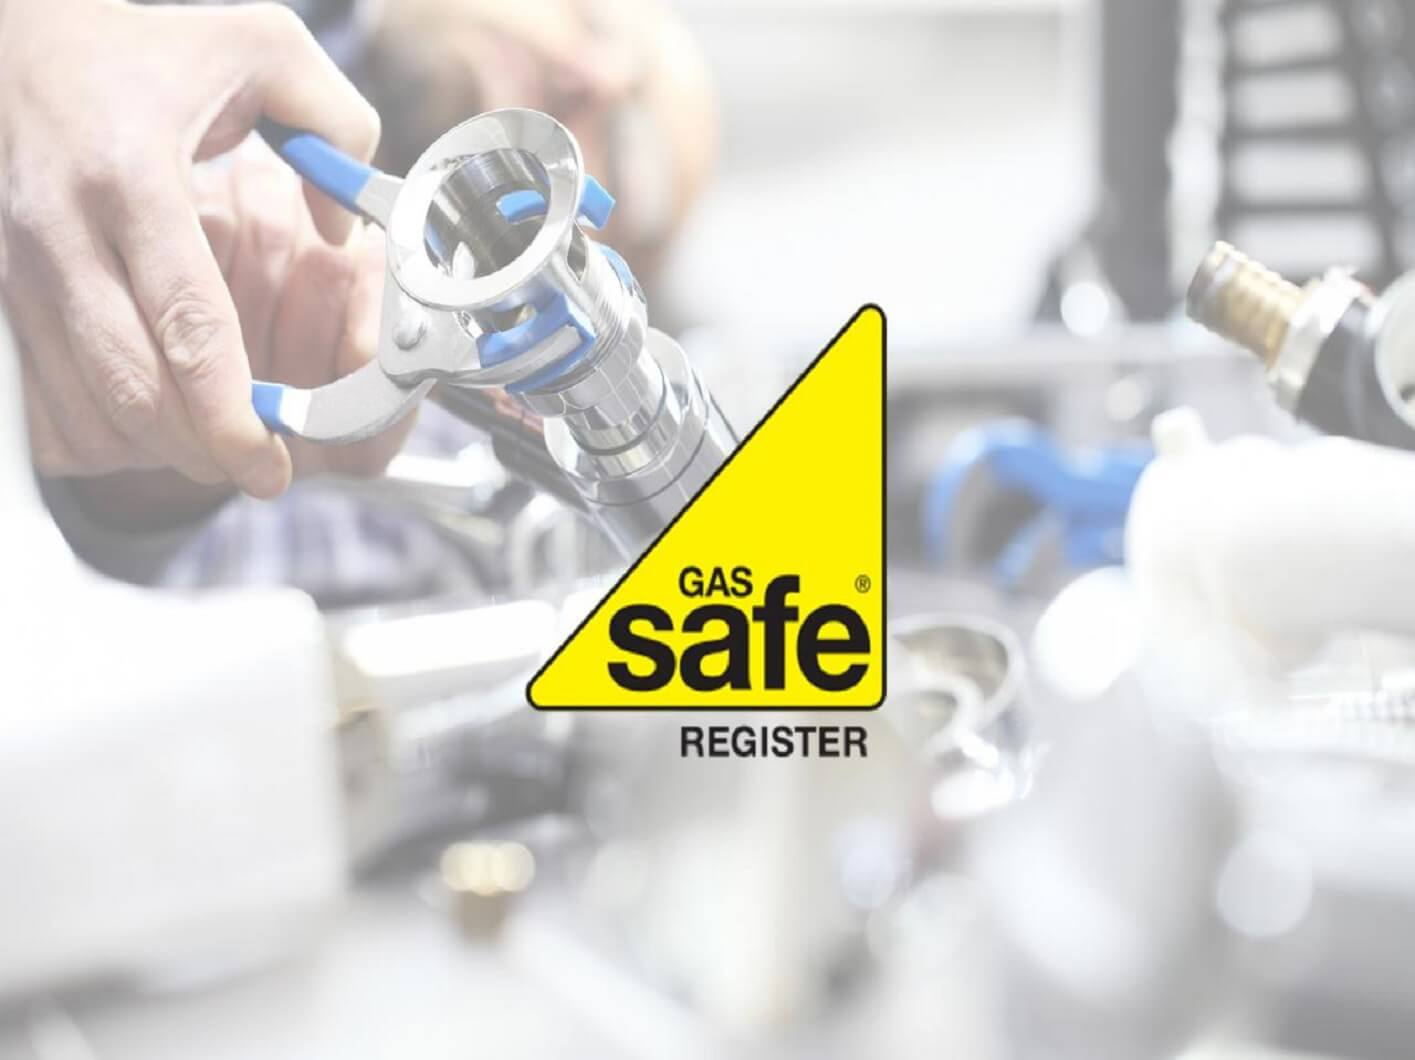 Emergency Plumbers Medway - Reliable Plumbers & Heating Engineers Ltd are Gas Safe Registered-114518- We are Fighting for a Gas Safe Nation